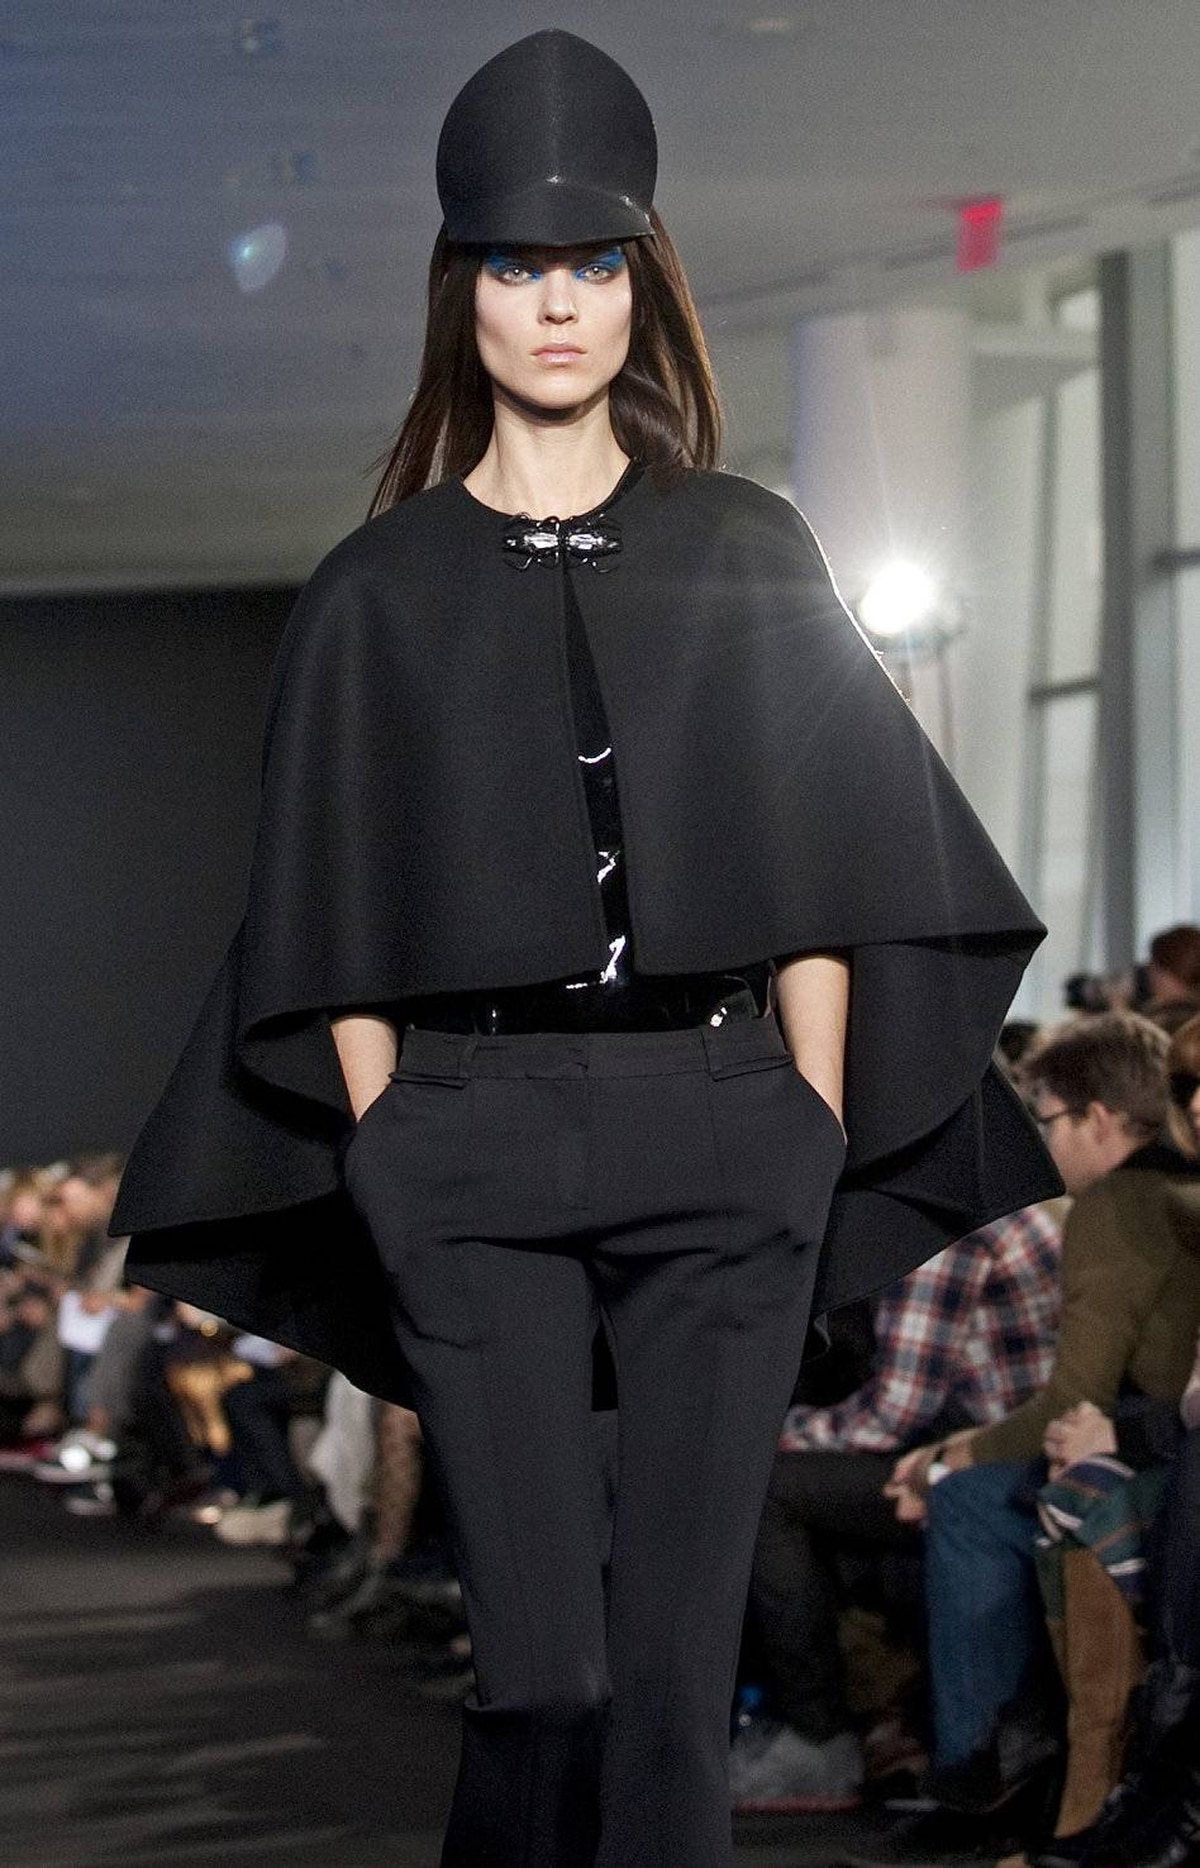 There was a lot to love about Nepalese-born designer Prabal Gurung's collection, which began with a high-impact grouping of black-on-black looks. This fitted and flared pant reappeared frequently and established an elongated silhouette. As for the visor, you'd take orders from someone wearing that, wouldn't you?